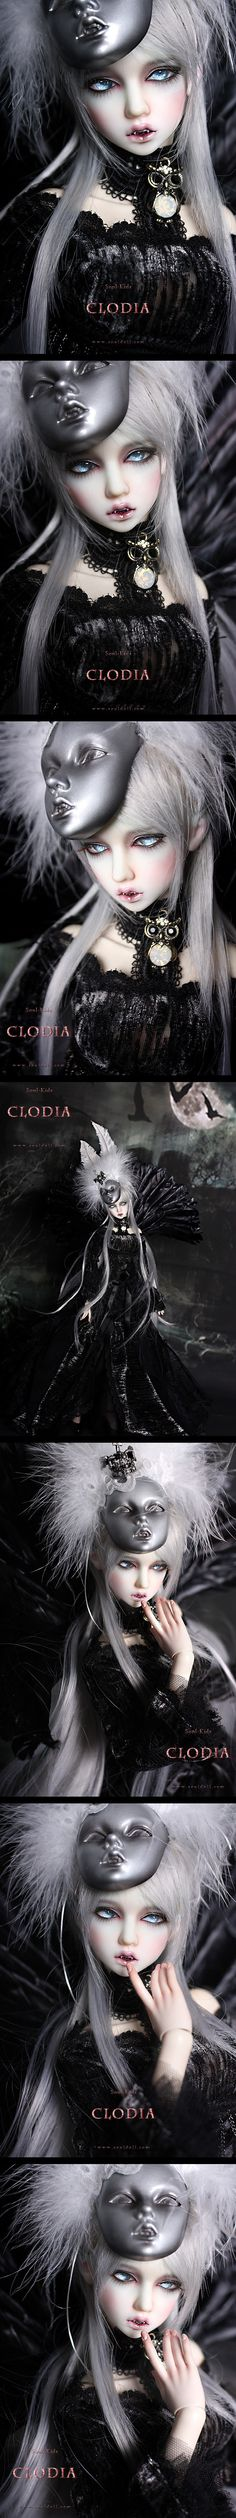 Clodia 43cm, Soul Doll - BJD Dolls, Accessories - Alice's Collections